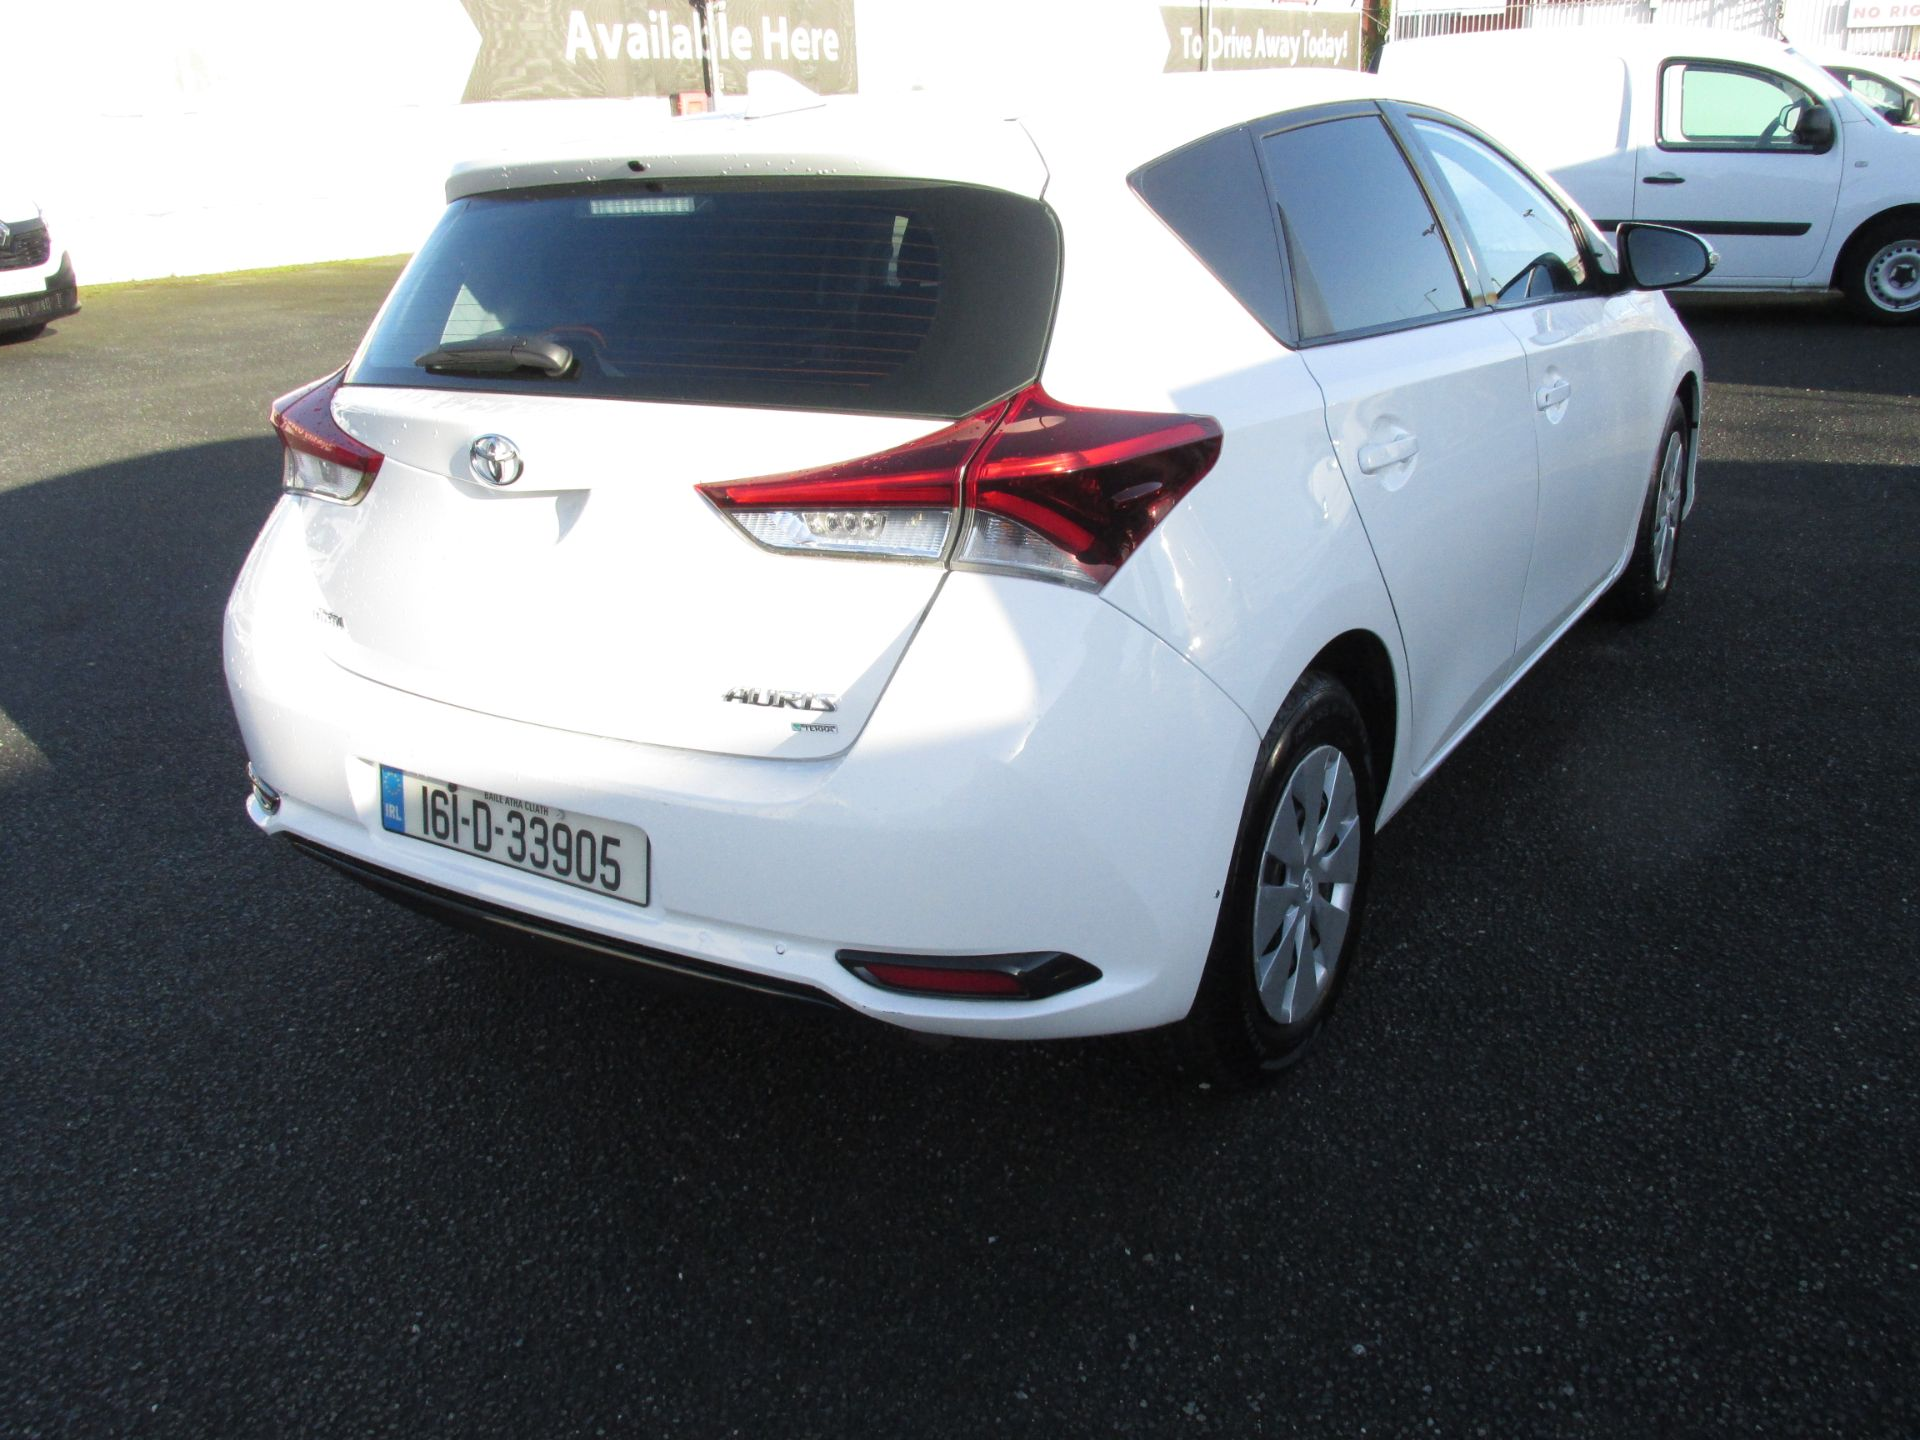 2016 Toyota Auris 1.4d-4d Terra 4DR click and collect call sales for more info (161D33905) Thumbnail 7